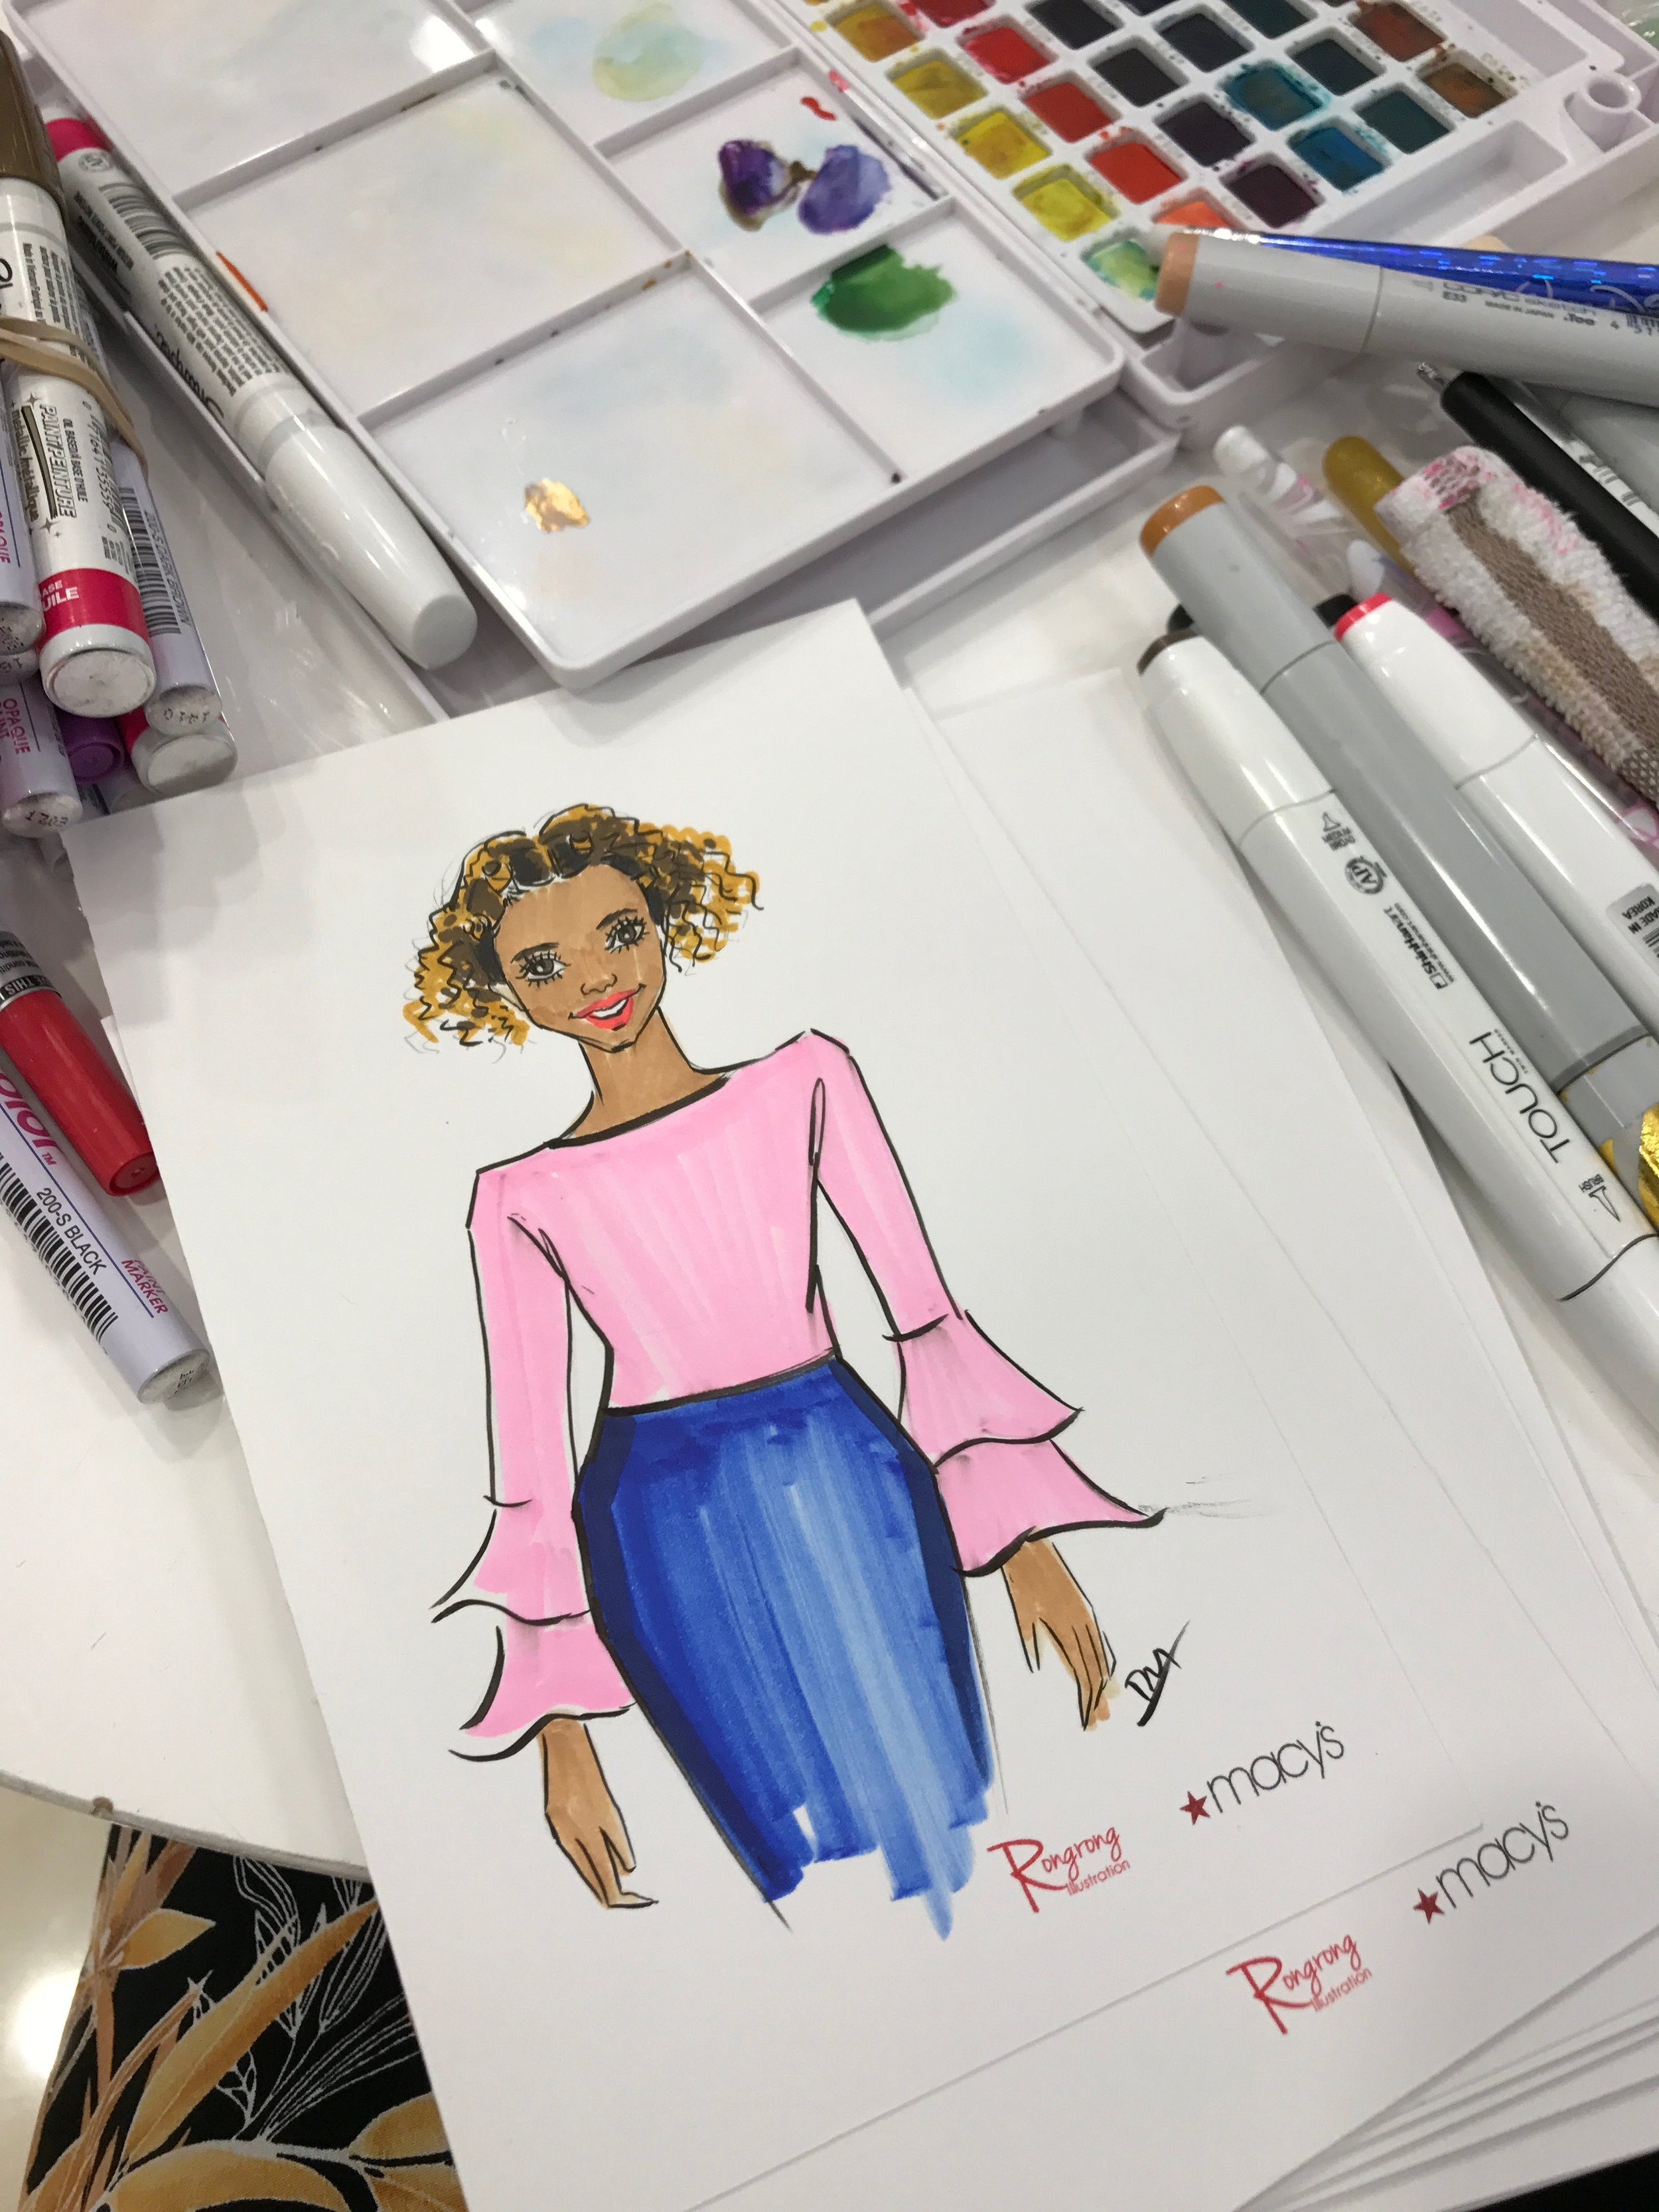 Rongrong DeVoe-Live sketching at Macy's Fall Fashion Event.jpeg